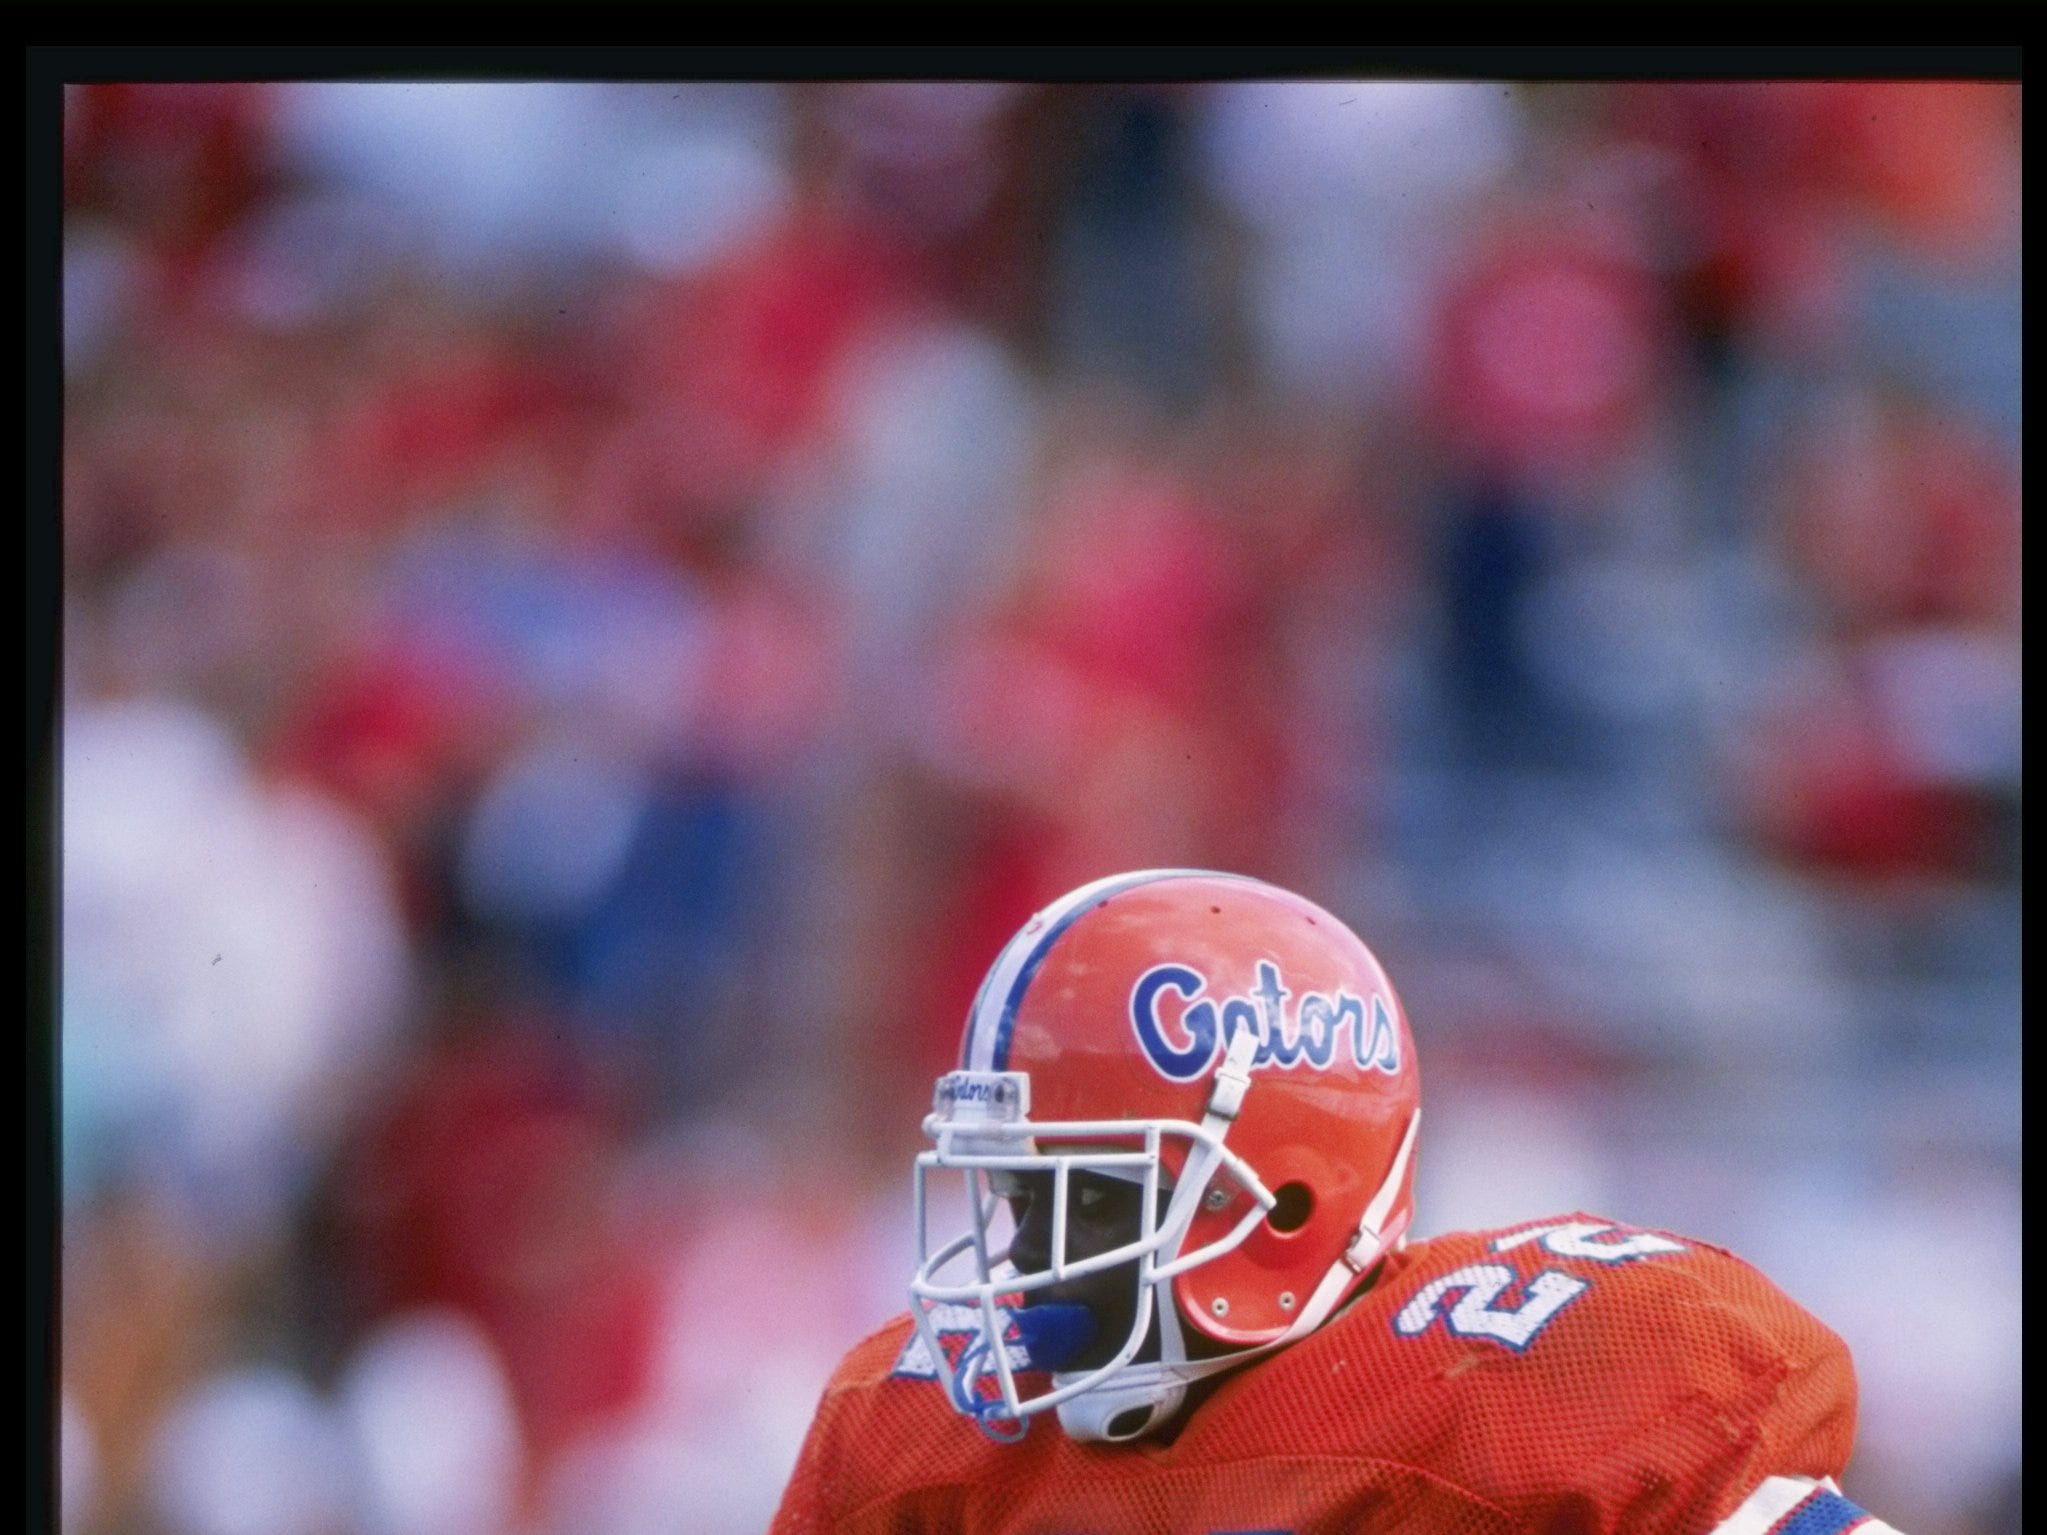 Running back Emmitt Smith of the Florida Gators runs down the field during a game at Florida Field in Gainesville, Florida.   Mandatory Credit: Allen Dean Steele